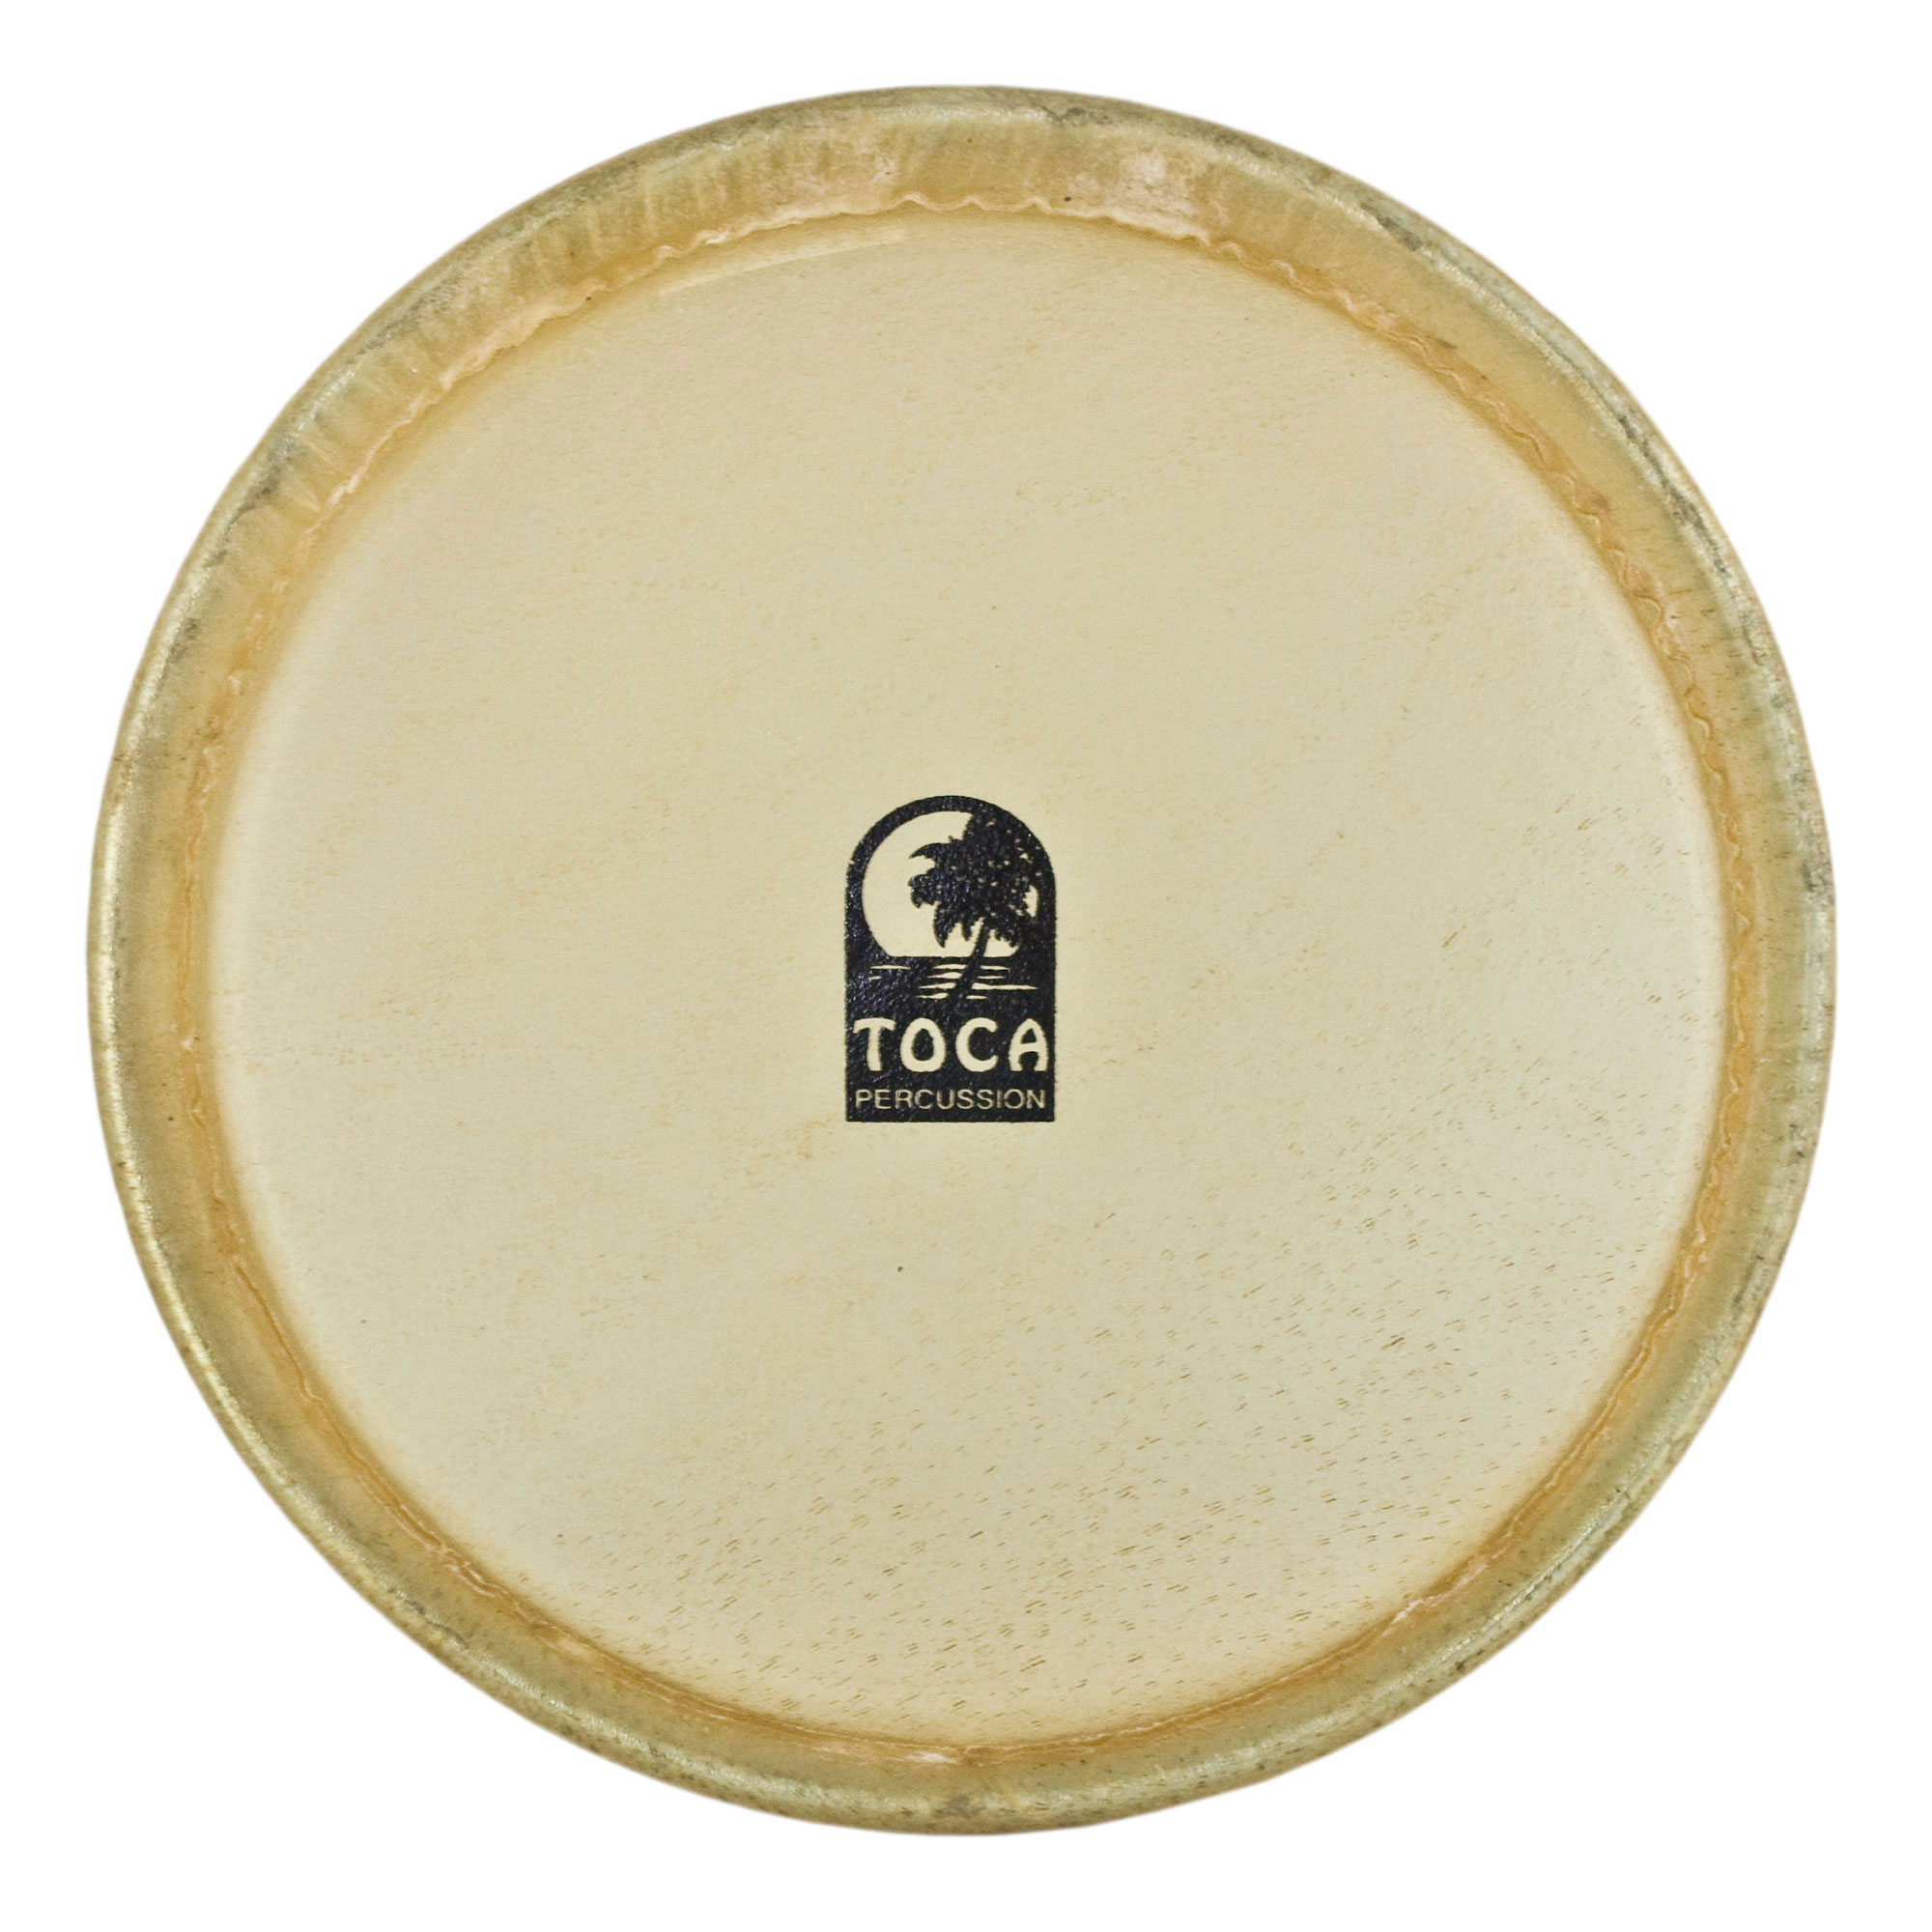 "Toca 11"" Traditional Rawhide Conga Drum Head"